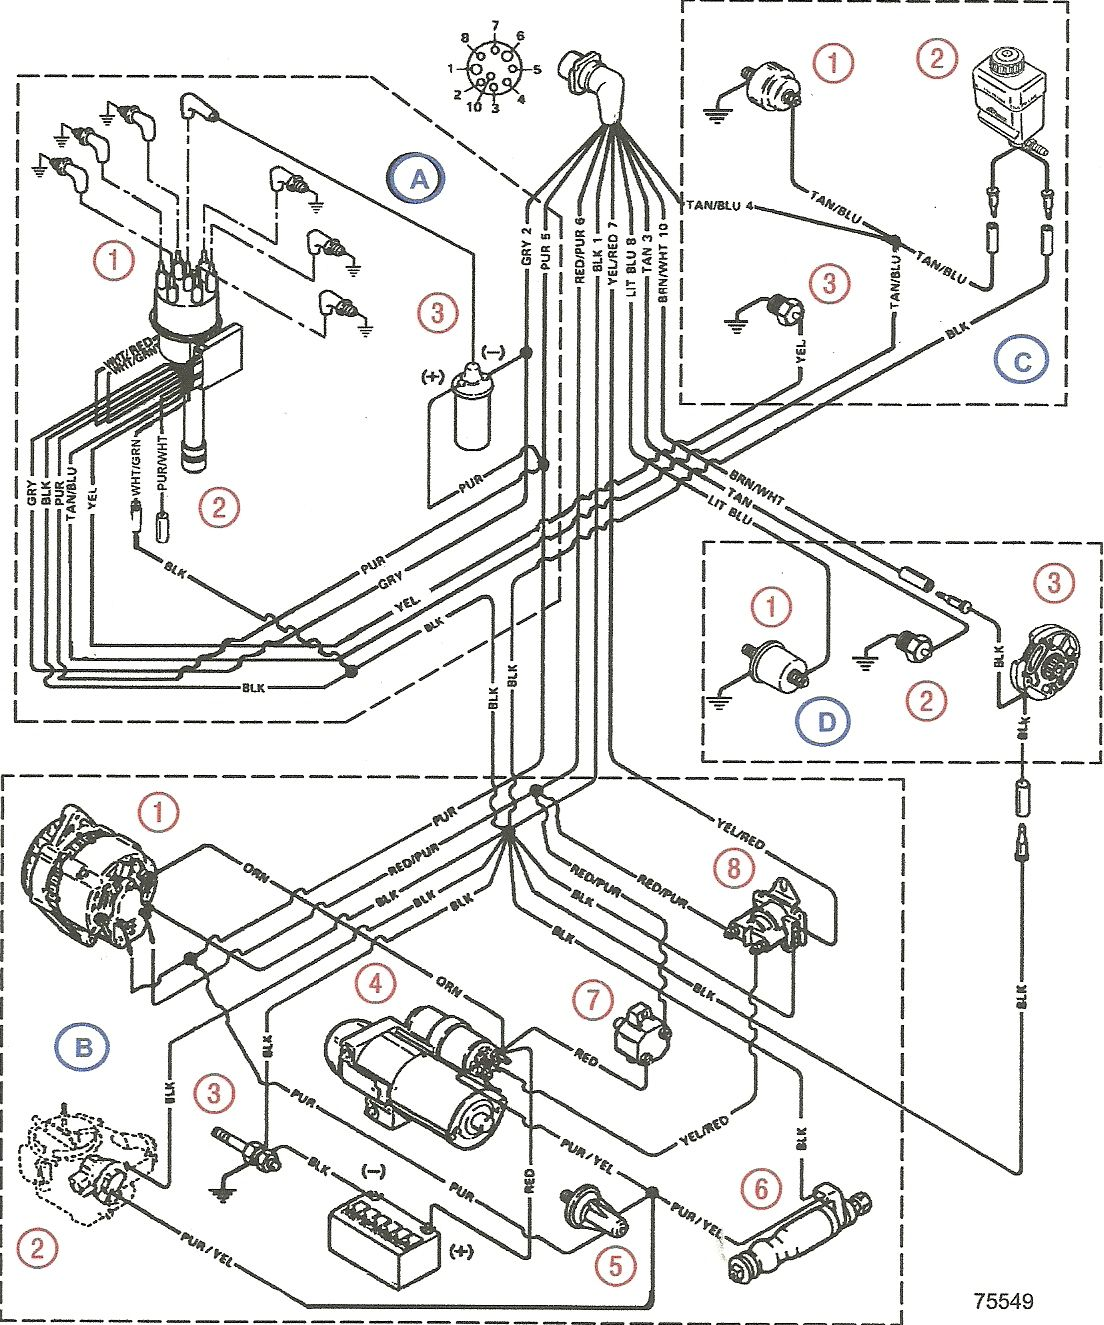 df3d87d7dab14da7e886d40225755260 volvo penta 5 7 wiring diagram simple boat wiring diagram \u2022 free 1979 volvo 242 dl wiring diagram at aneh.co